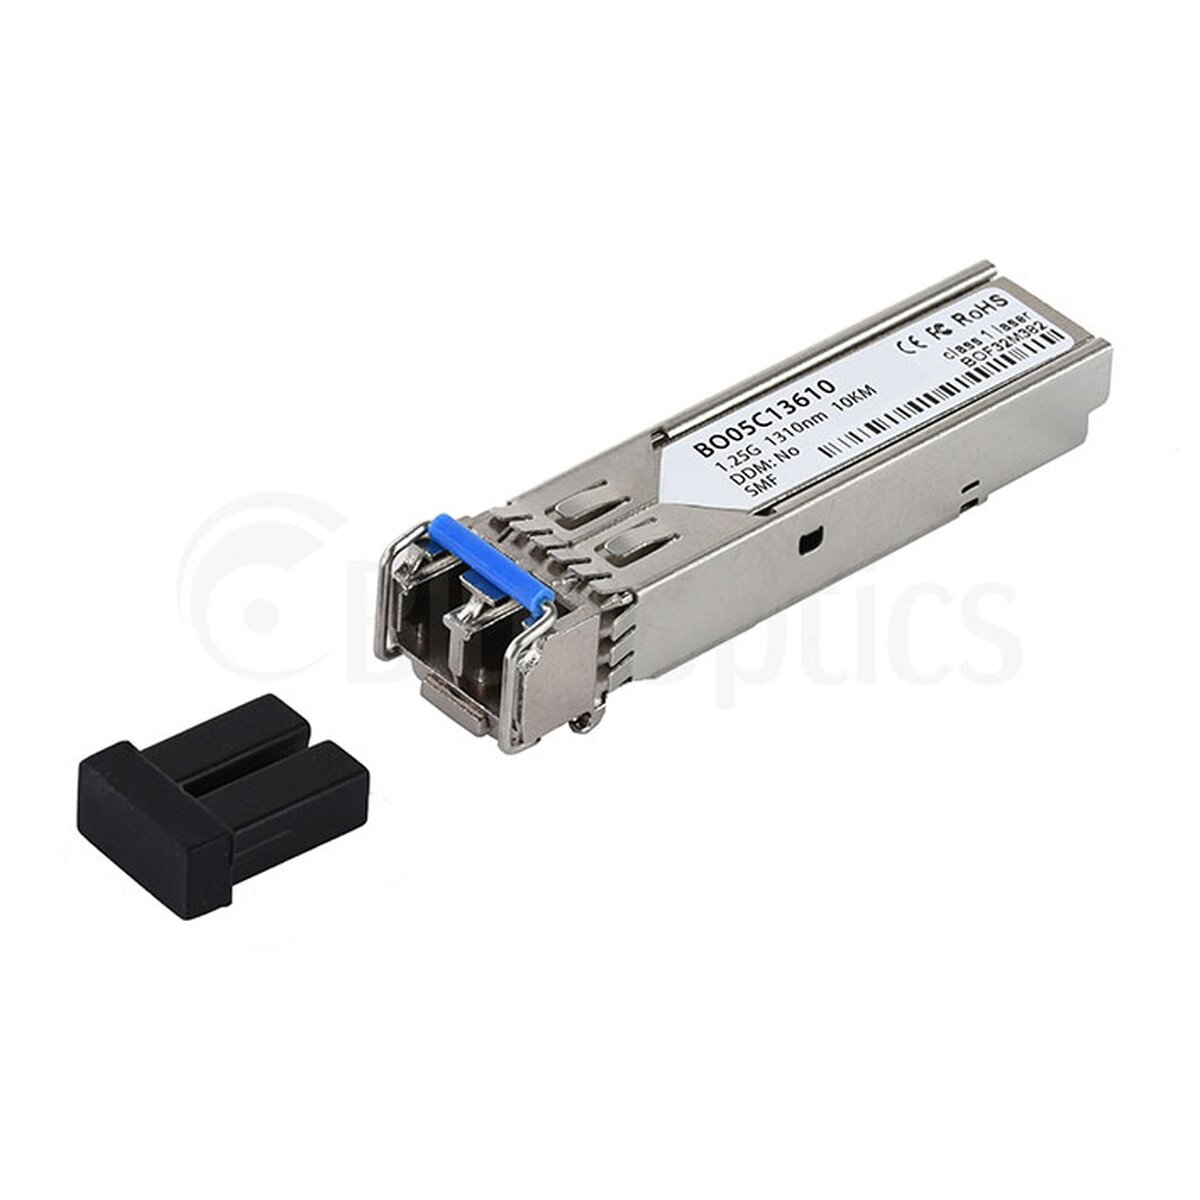 Communication Equipments Fiber Optic Equipments Teg-mgbs10 Compatible 1000base-lx Sfp 1310nm 10km Dom Transceiver